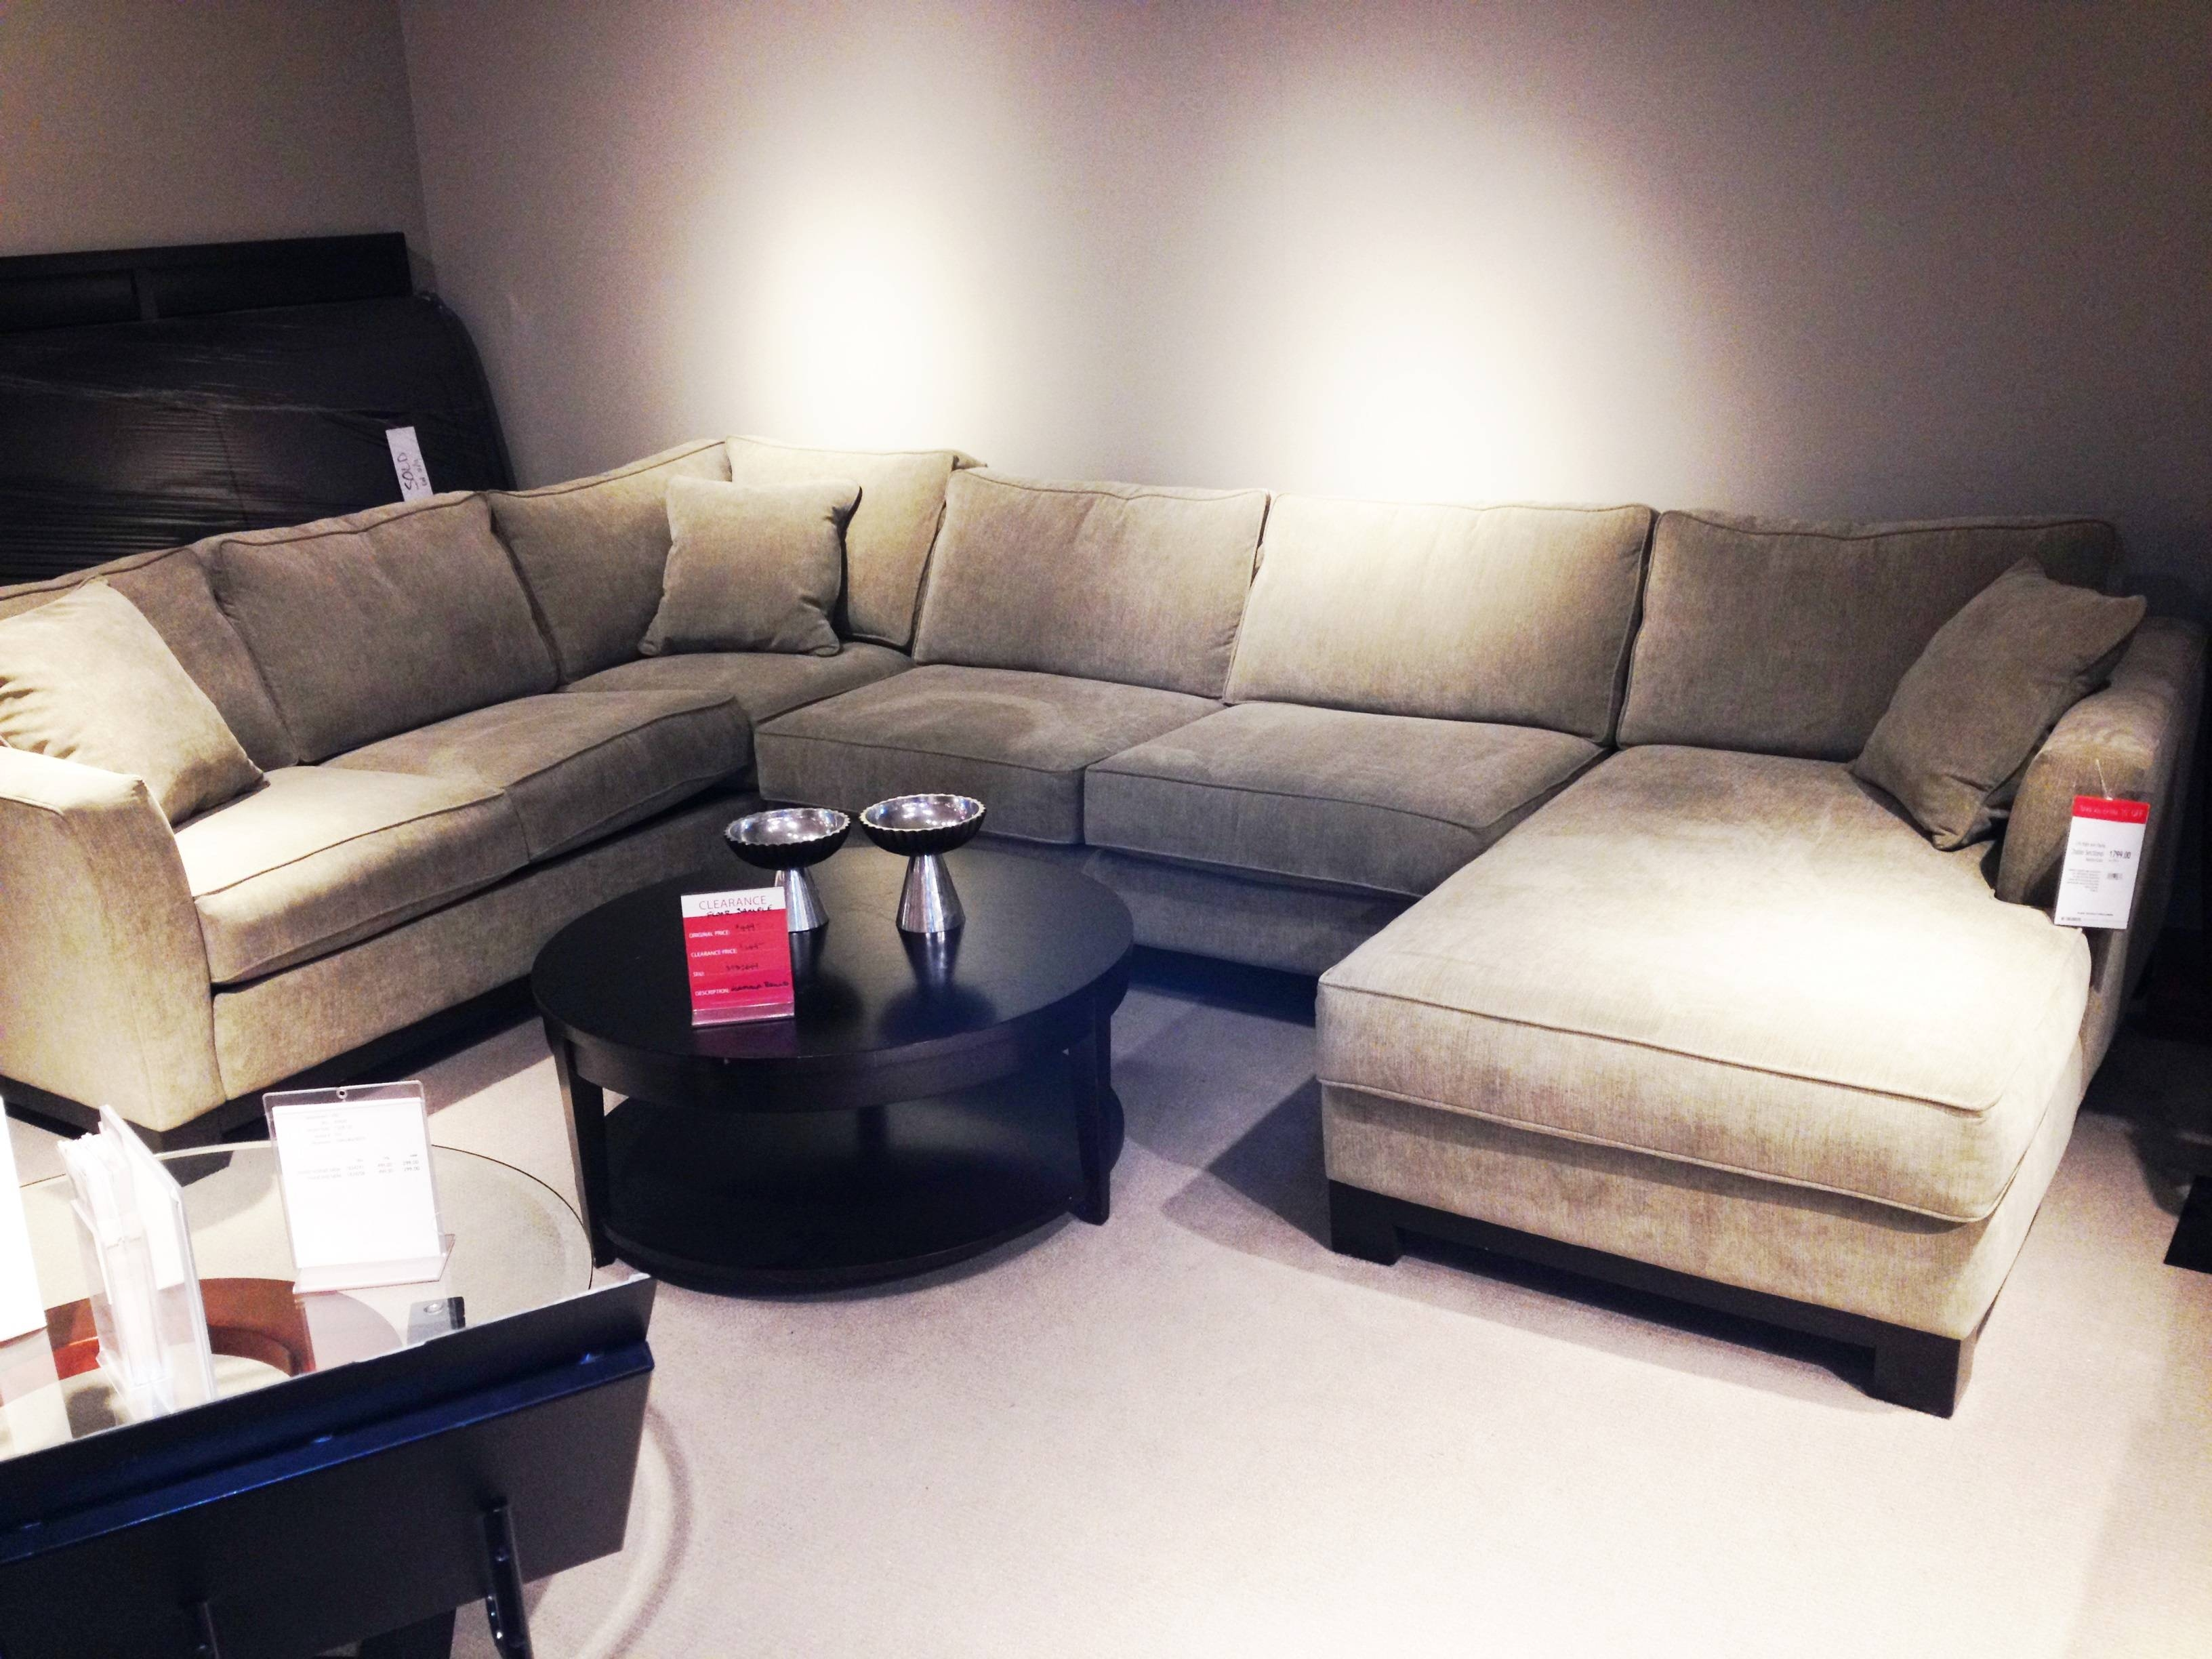 Furniture: Small Sectional Sofas For Small Spaces | Craigslist intended for Craigslist Sectional Sofa (Image 13 of 30)